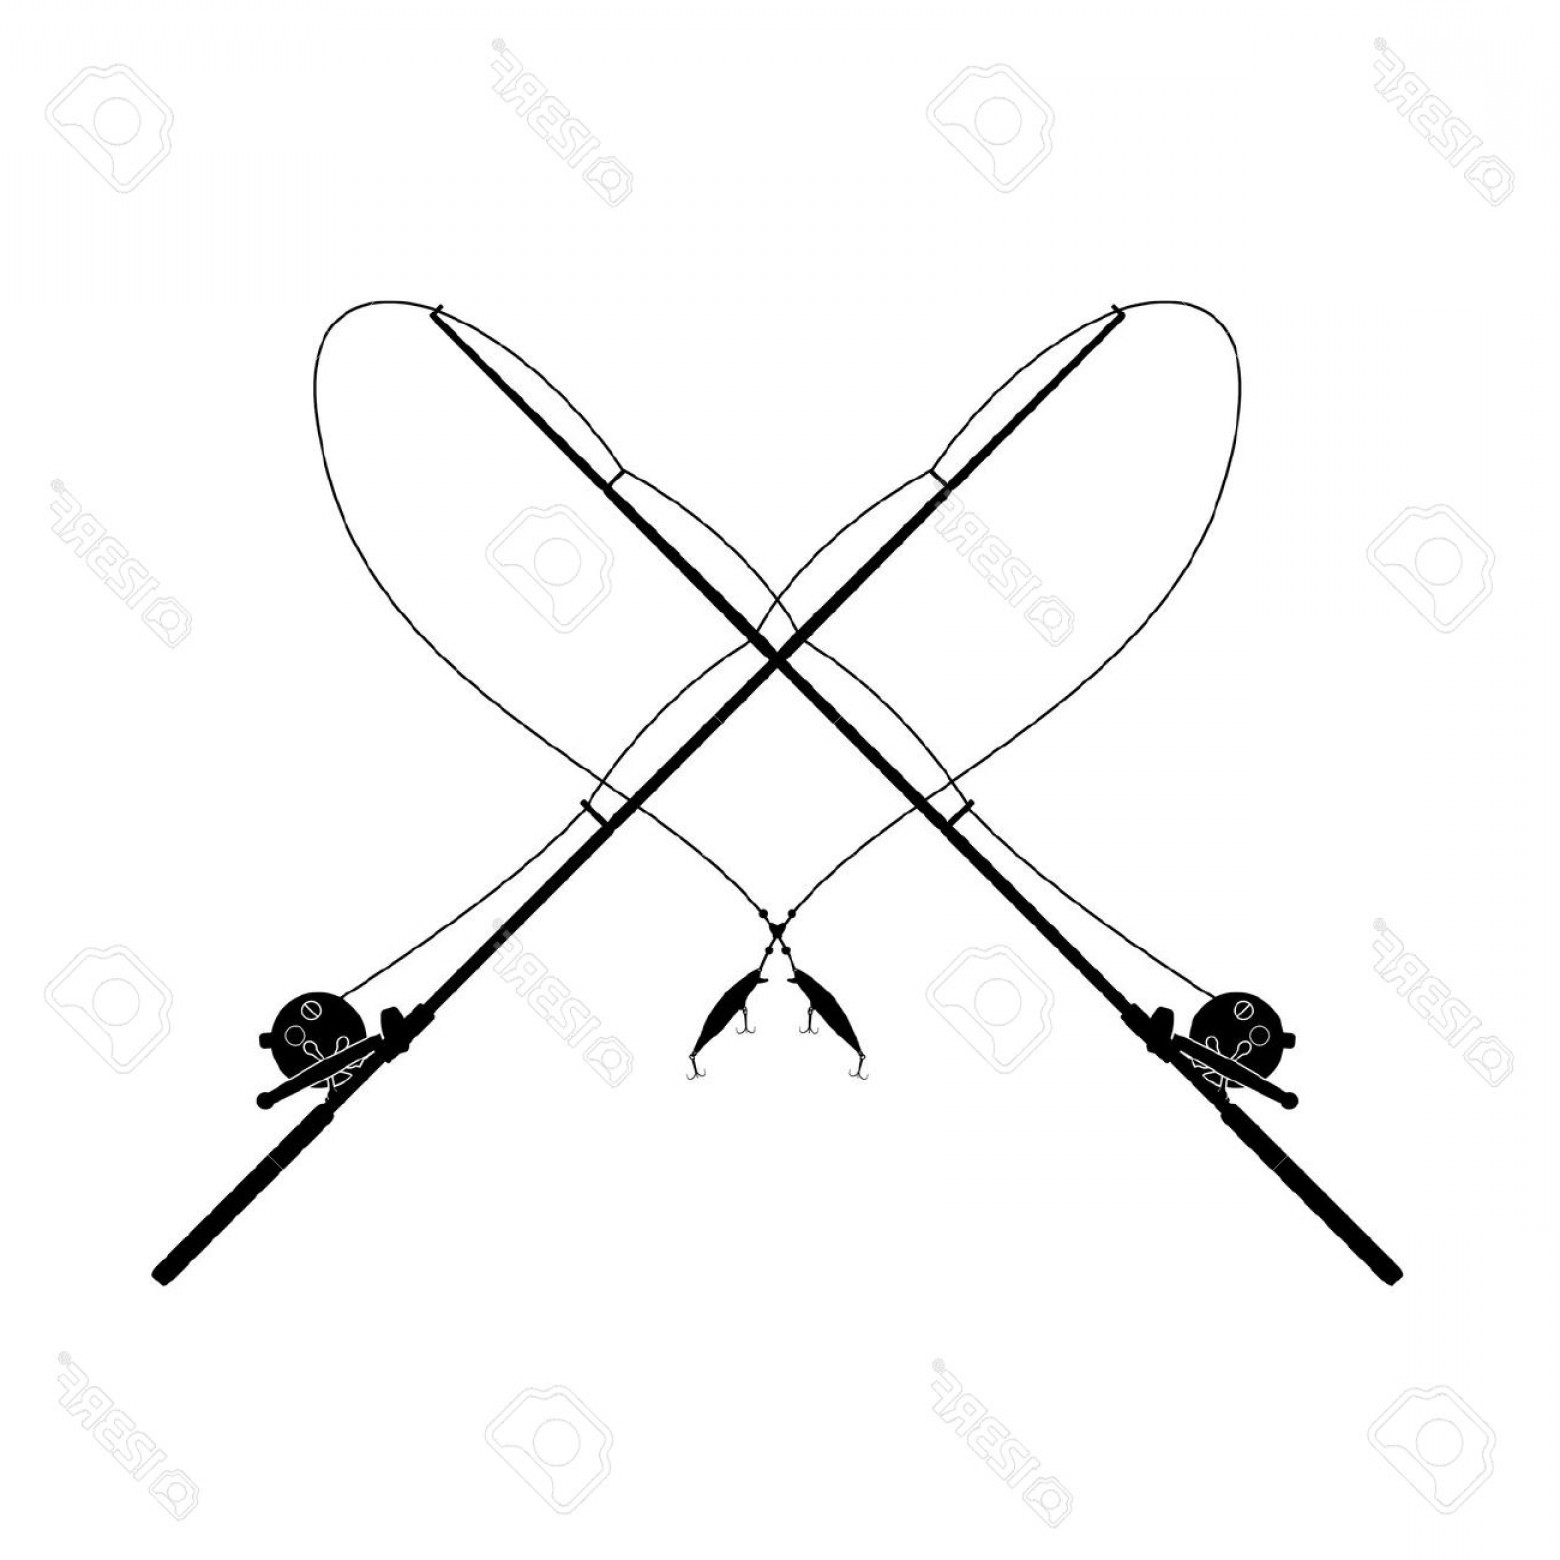 1560x1560 Fishing Rod Clipart Crossed